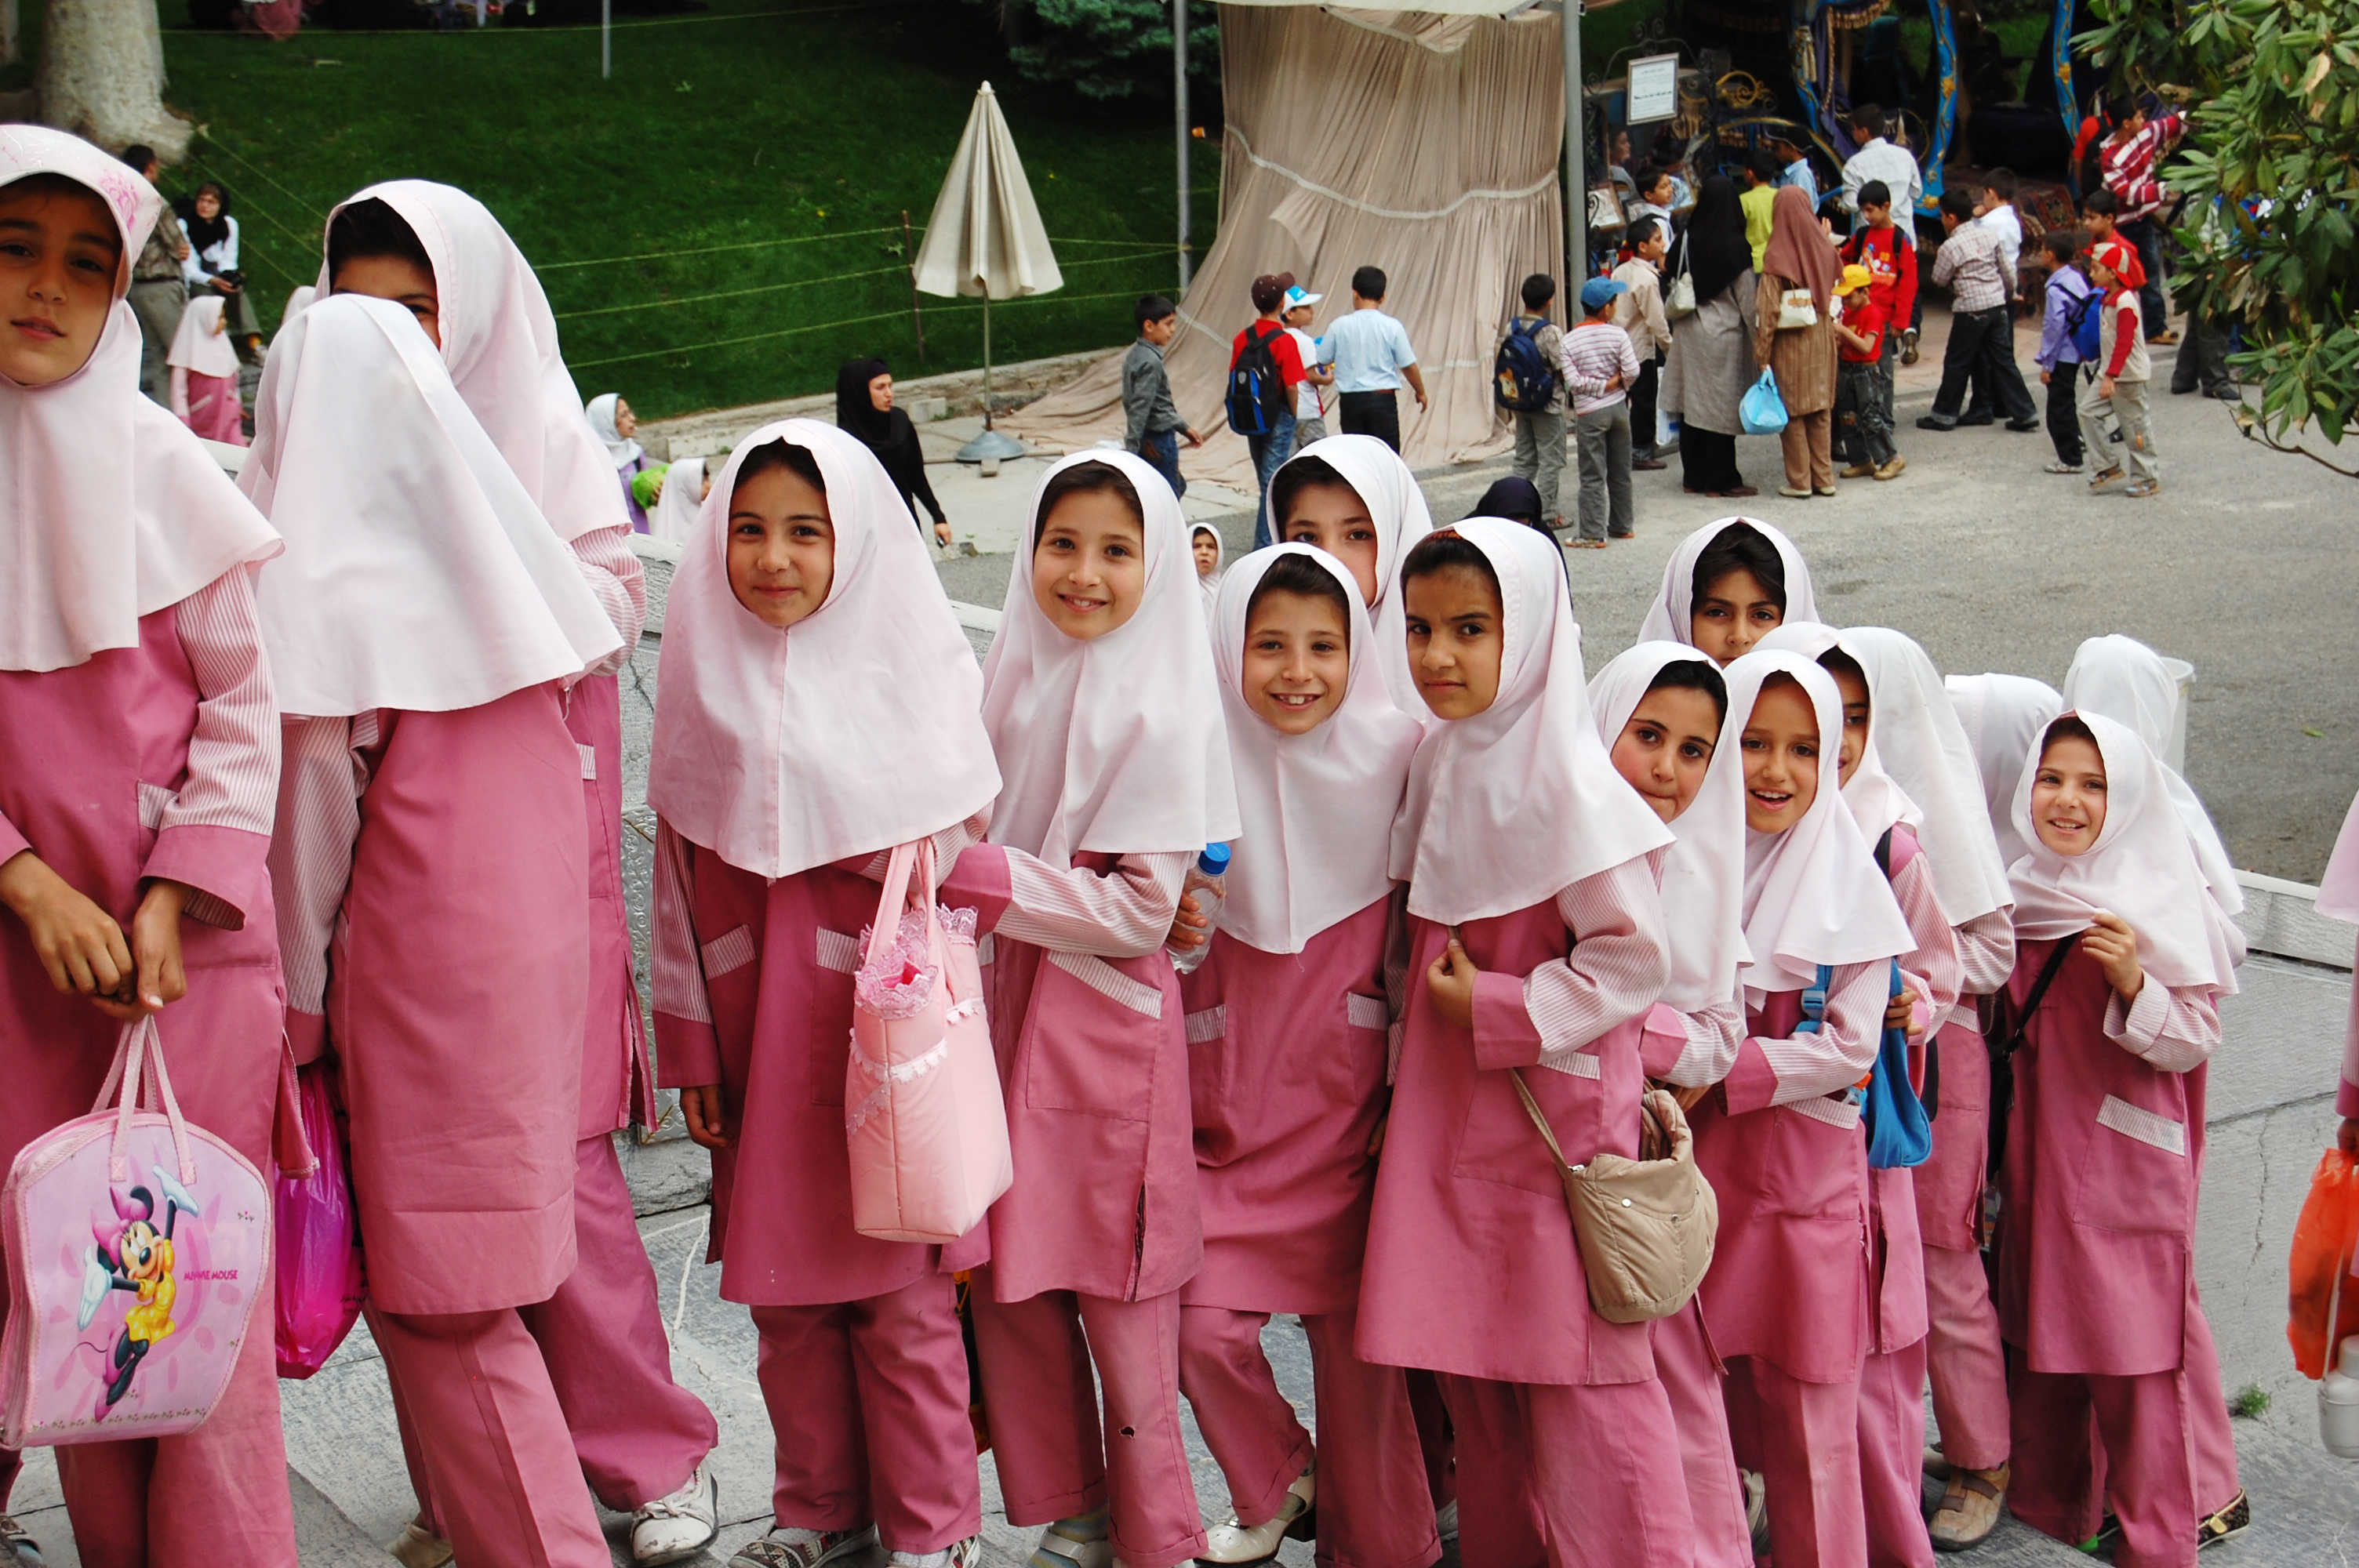 Iranian school girls in pink garments.